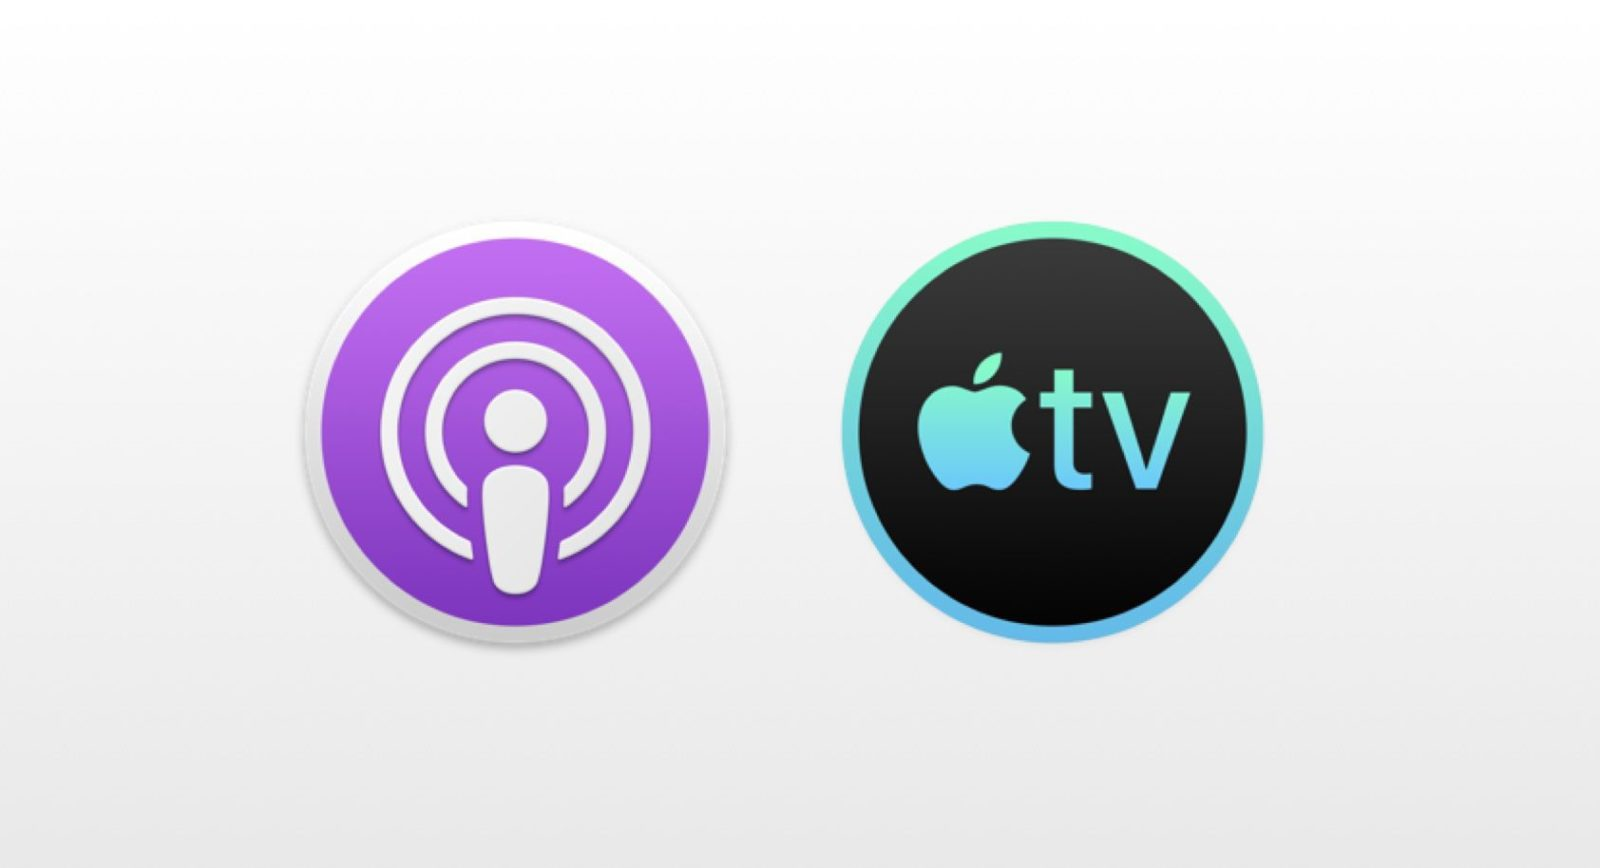 Le icone delle app Podcasts et Apple TV perr macOS